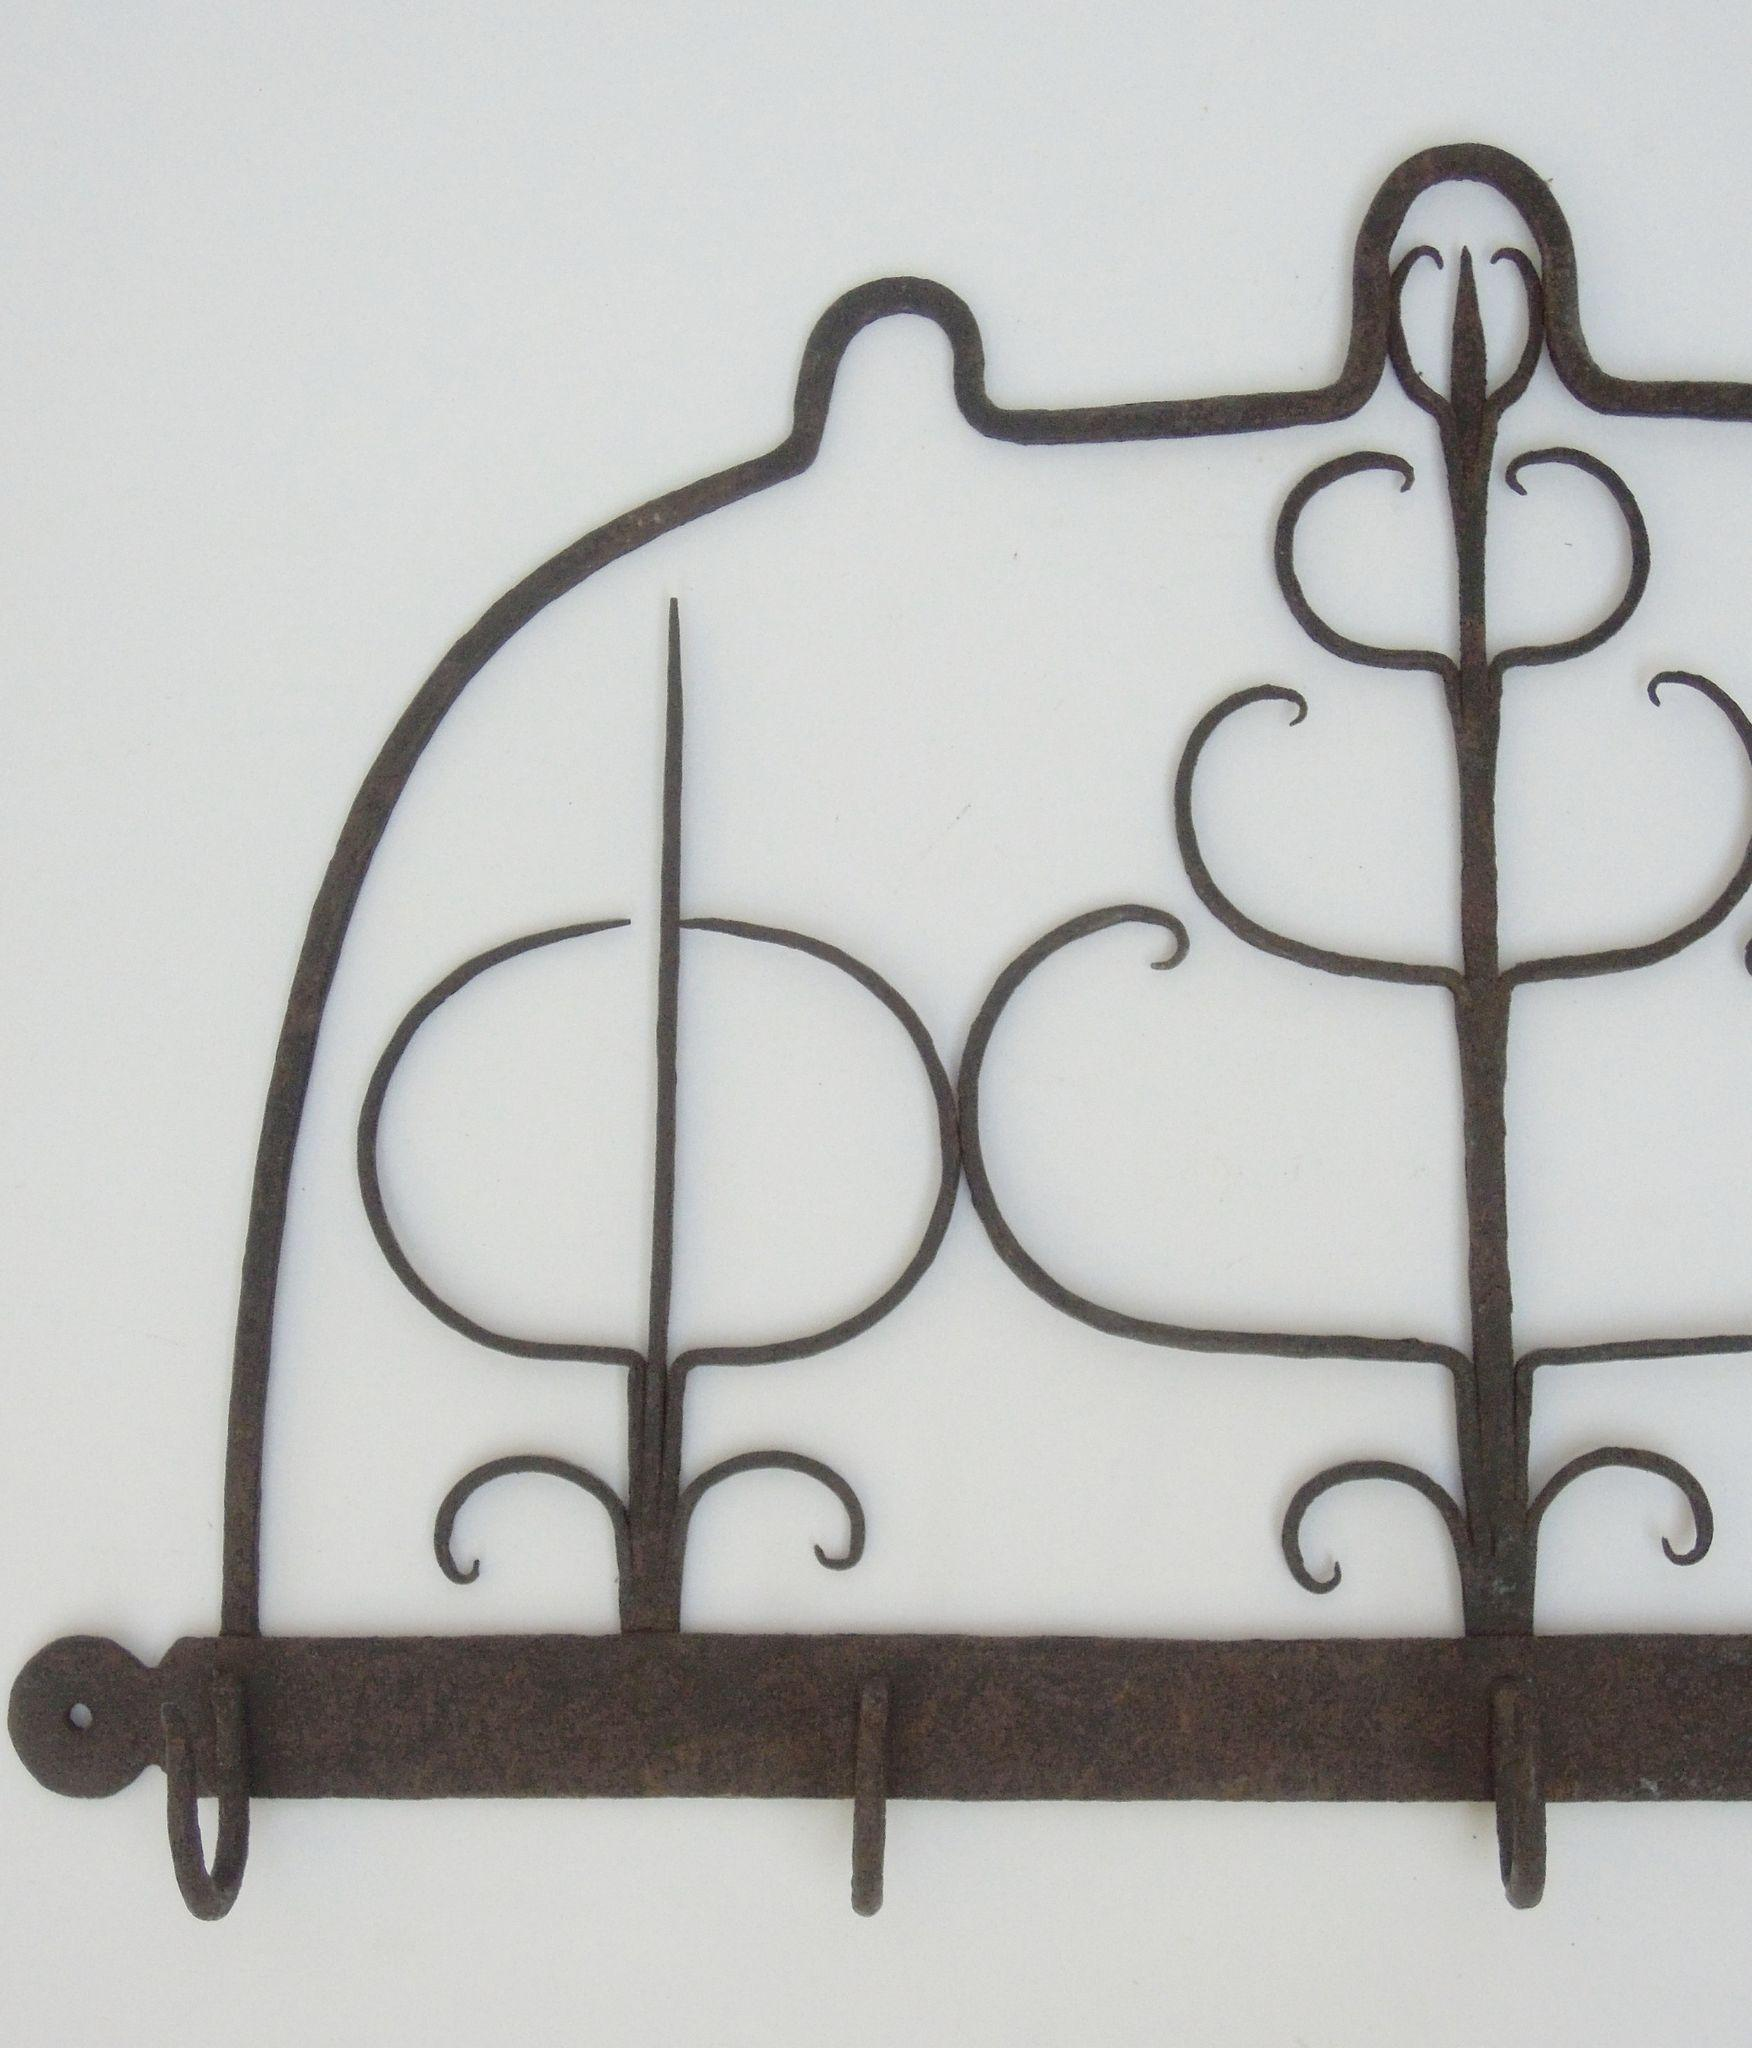 antique hand forged iron meat rack or pot rack coat hook mug roll over large image to magnify click large image to zoom